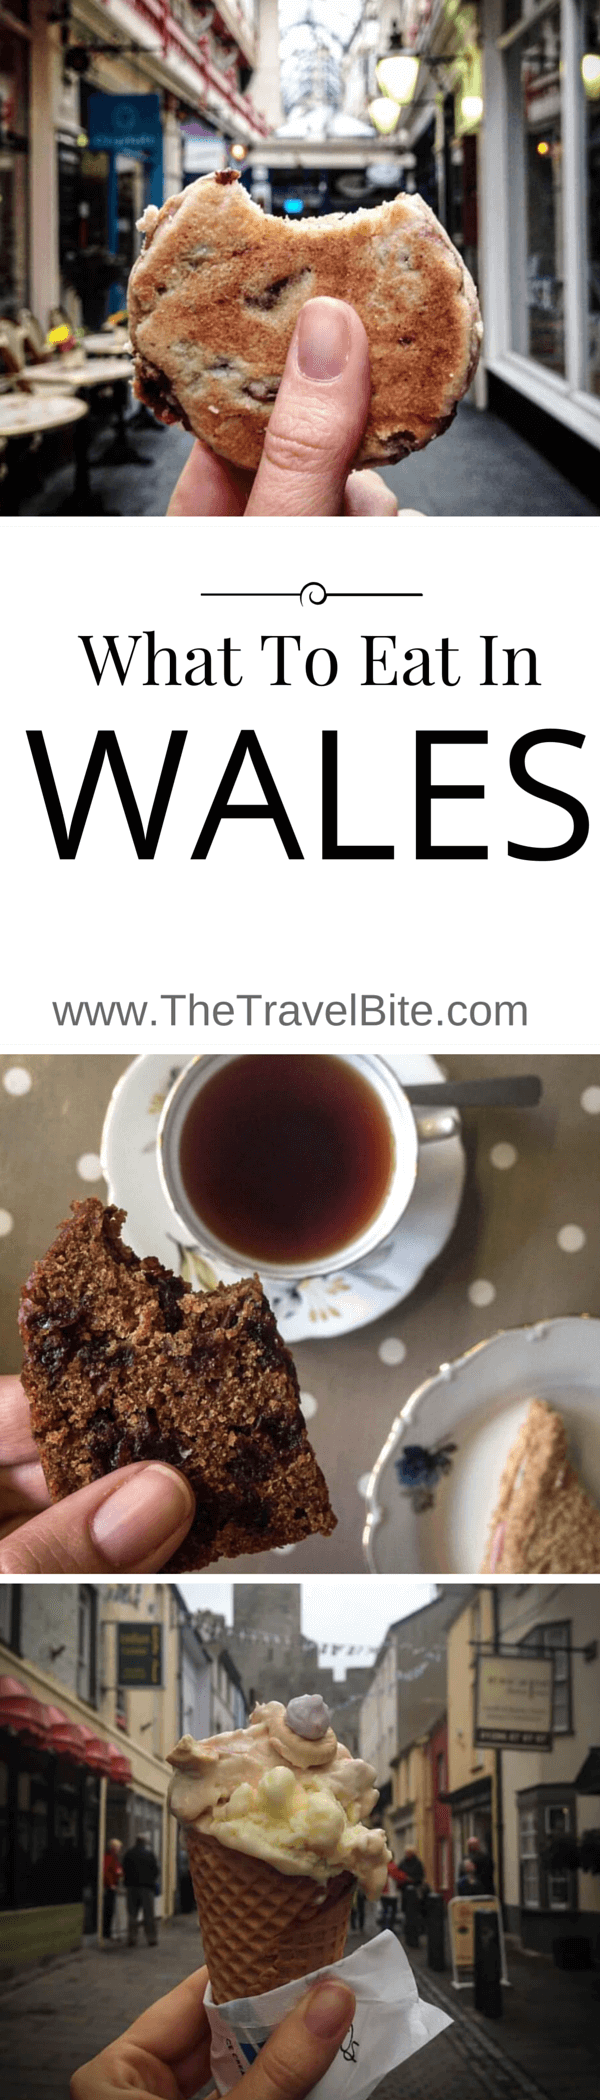 What To Eat In Wales-2